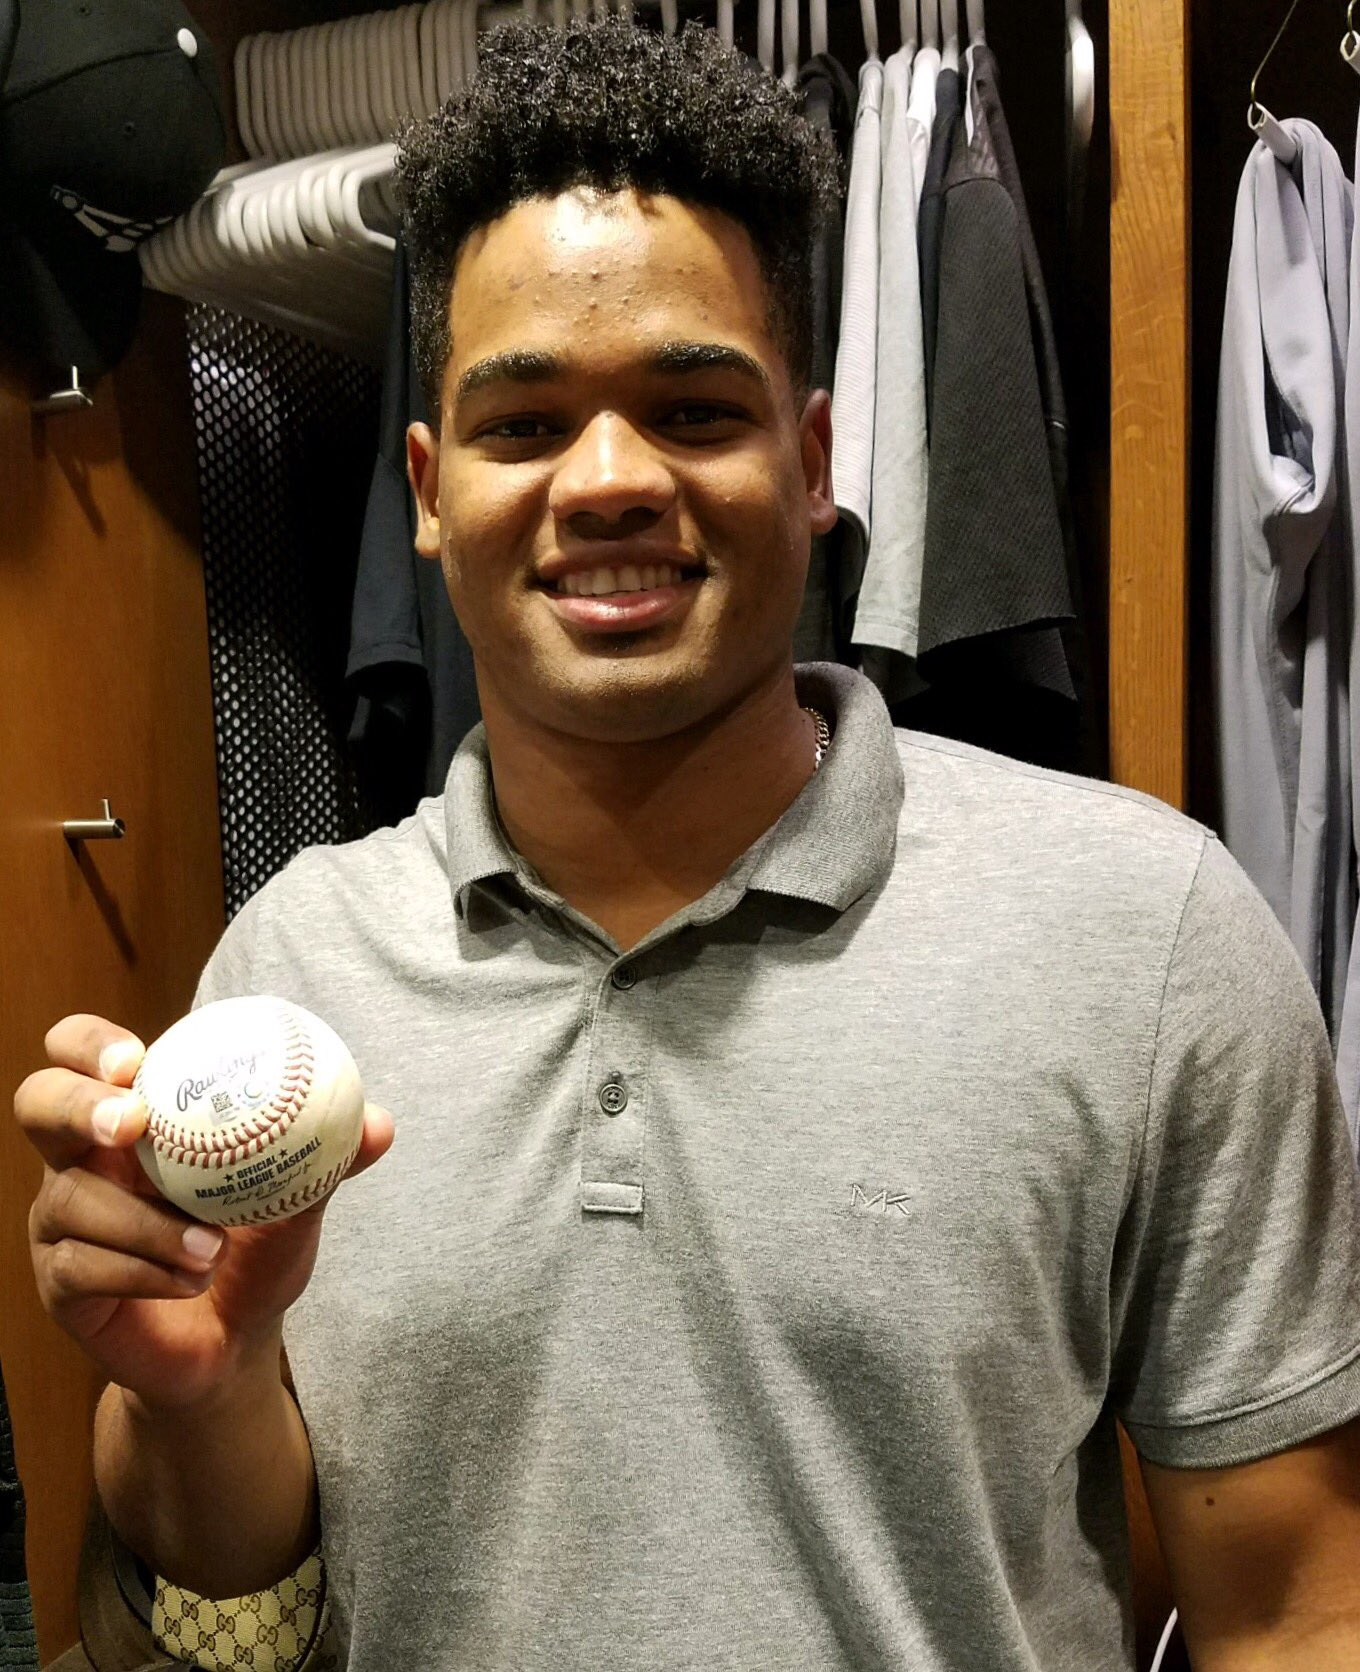 The baseball from his first strikeout in a White Sox uniform. Congrats, Reynaldo! https://t.co/LGpbzGqqWq